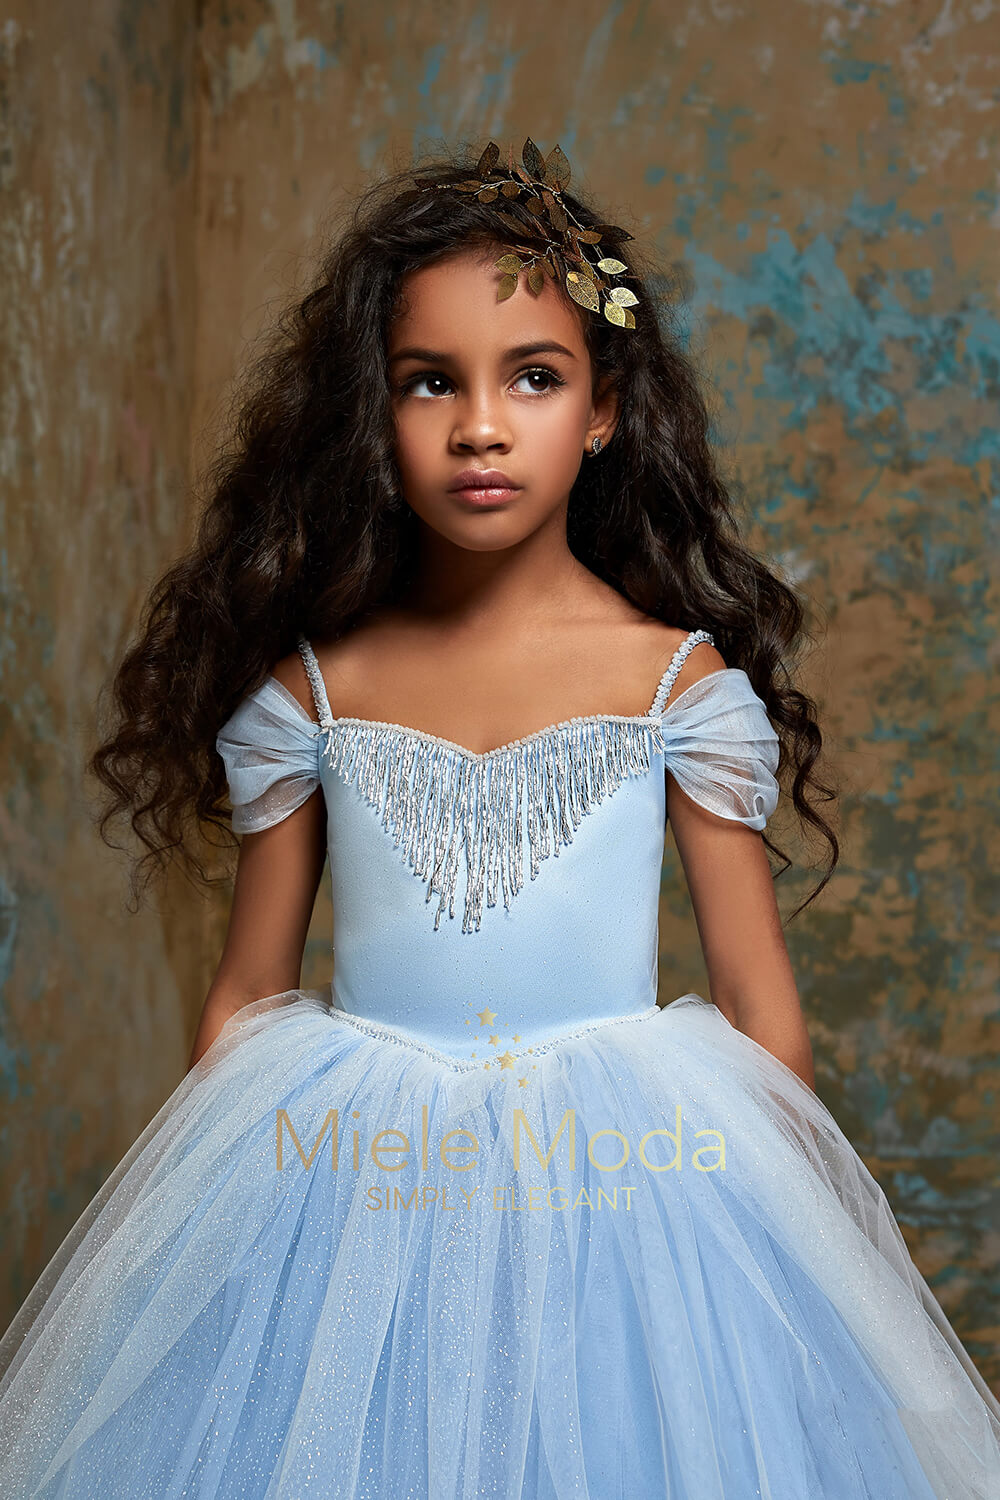 Pretty girl wearing Galina Flower Girl Couture Dress-by Miele Moda Boutique